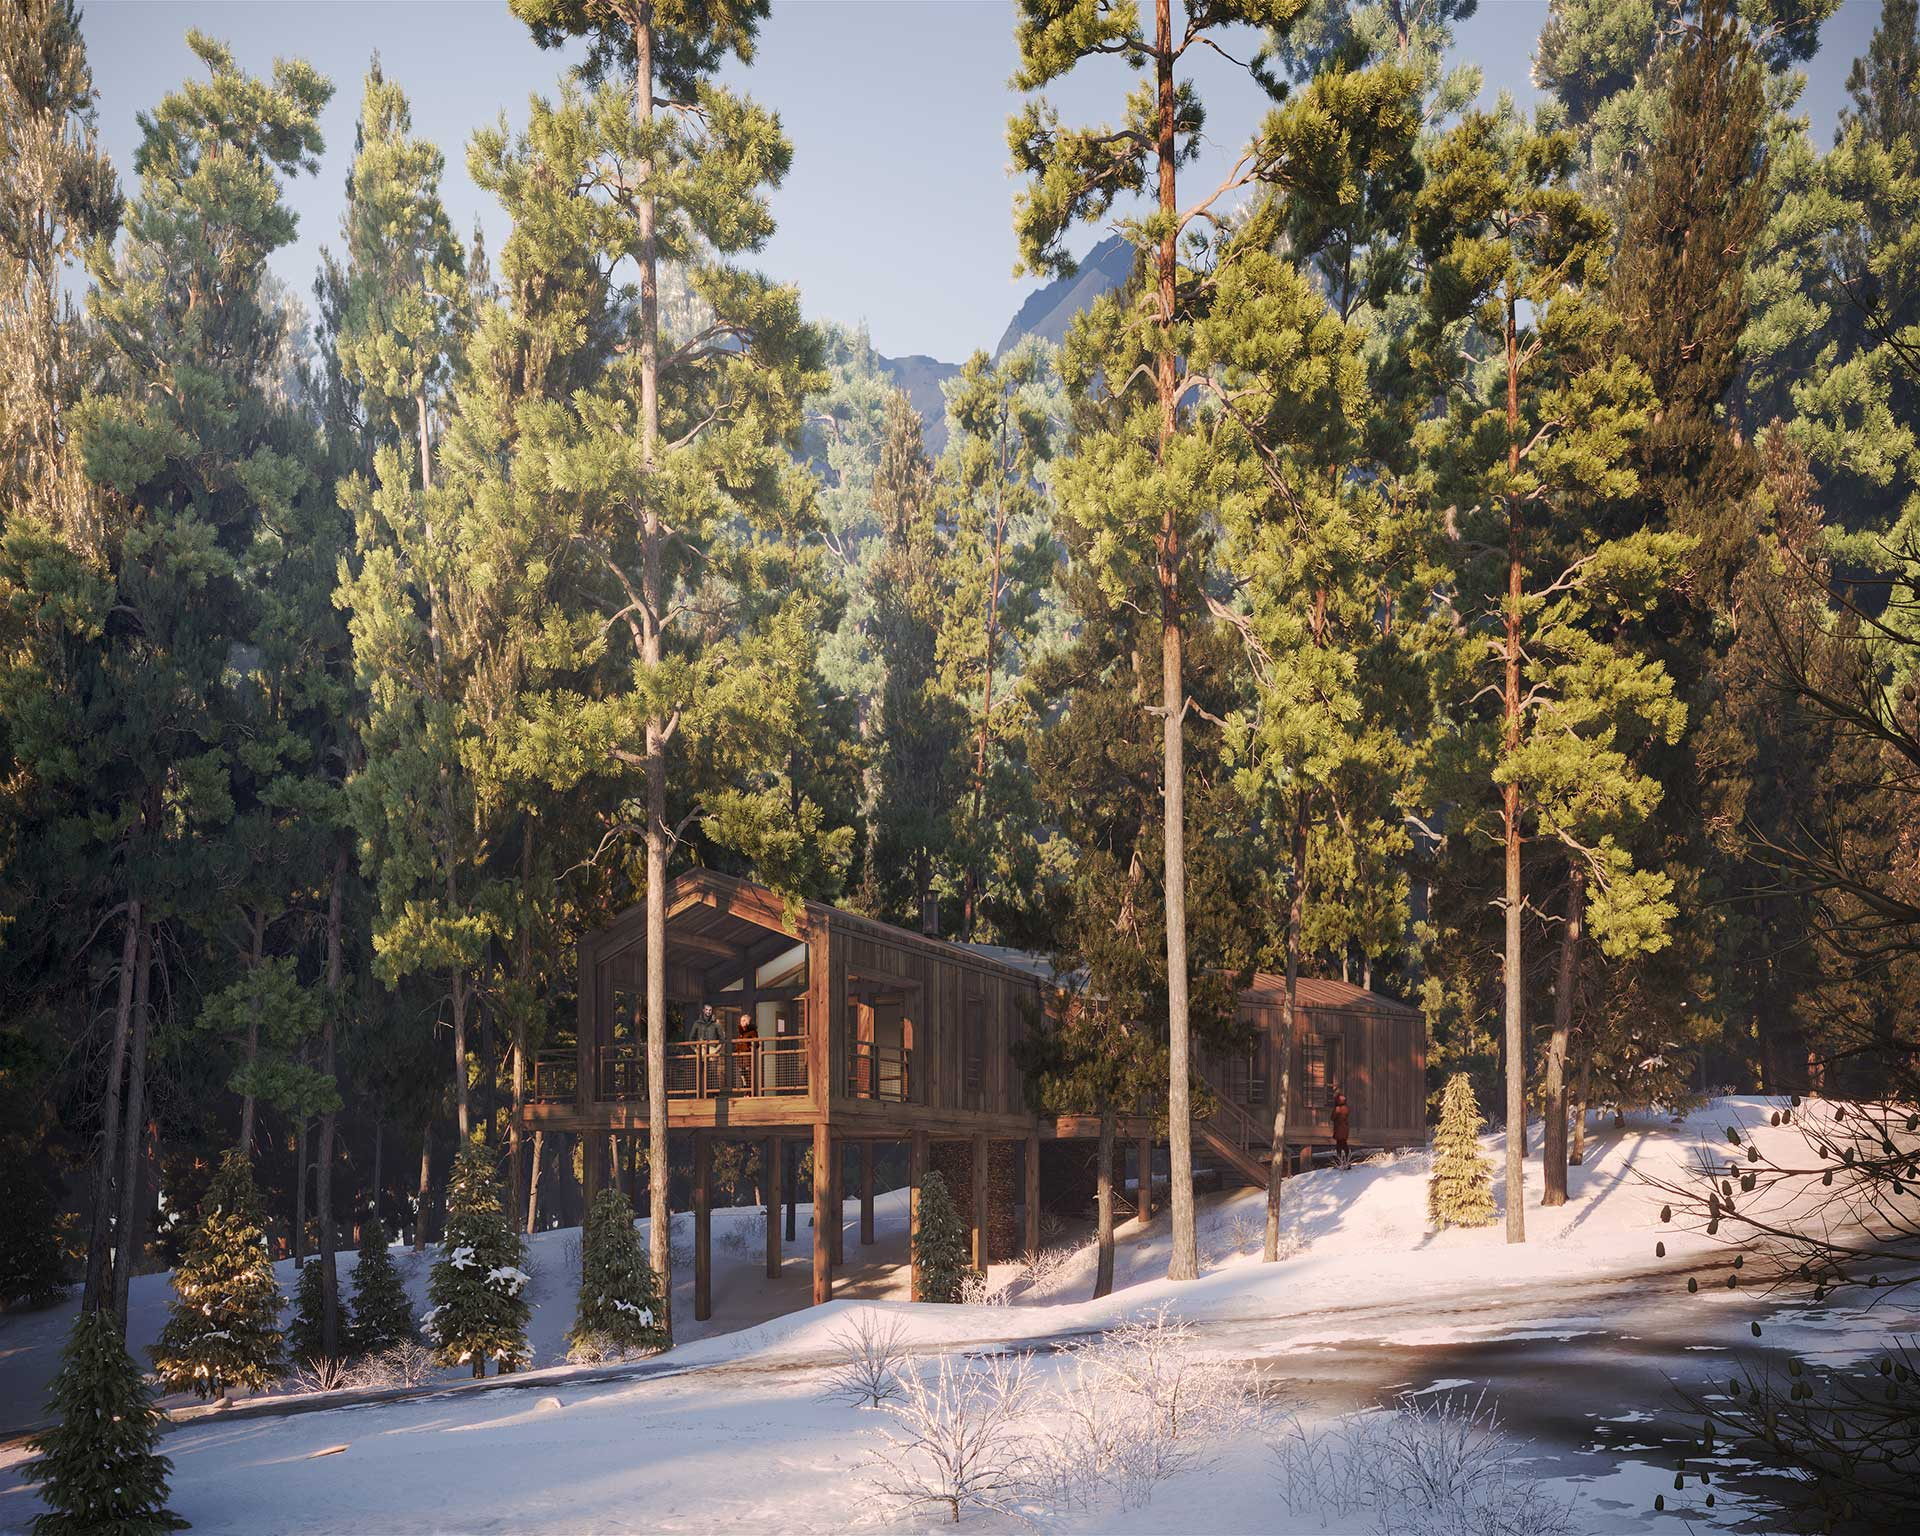 3D visualization of a cabin insertion in a forest landscape